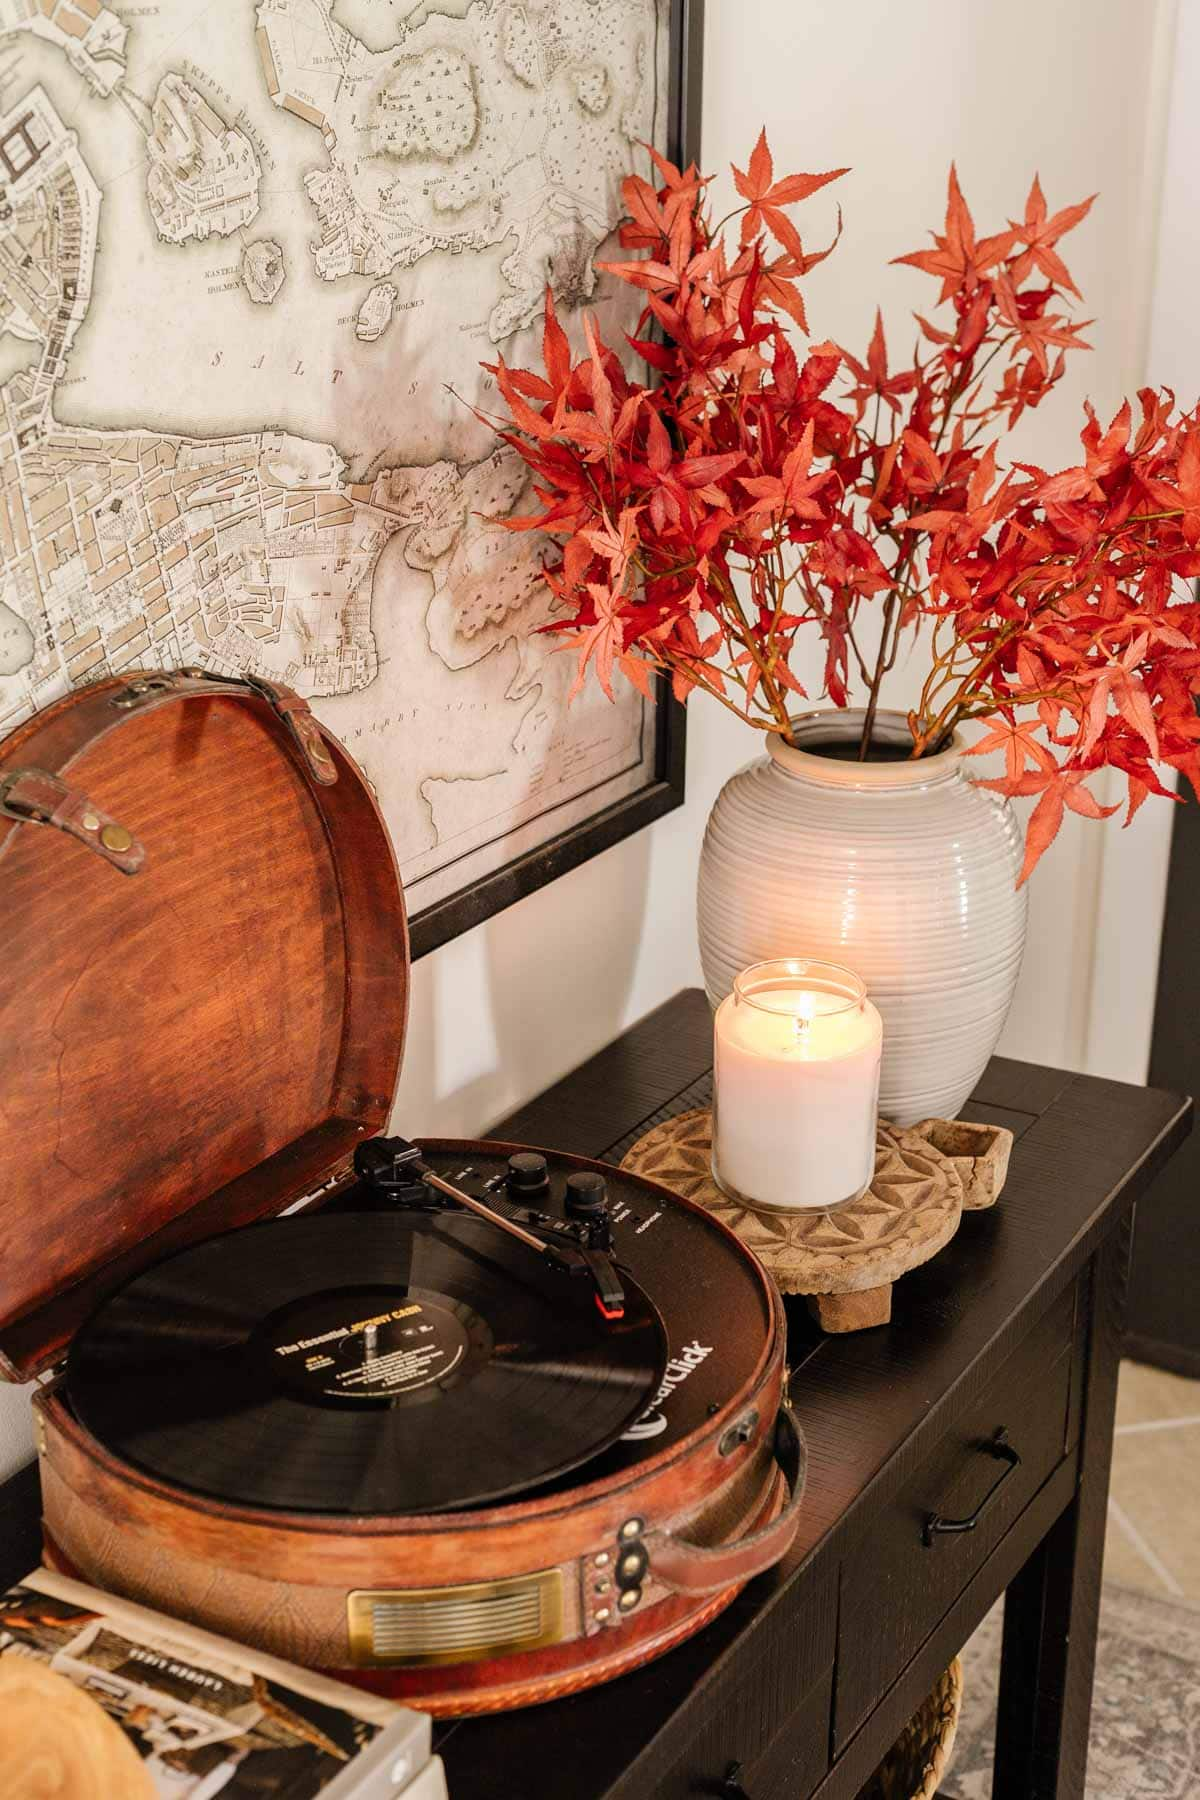 relaxing music playing on a record player with fall leaves in a vase